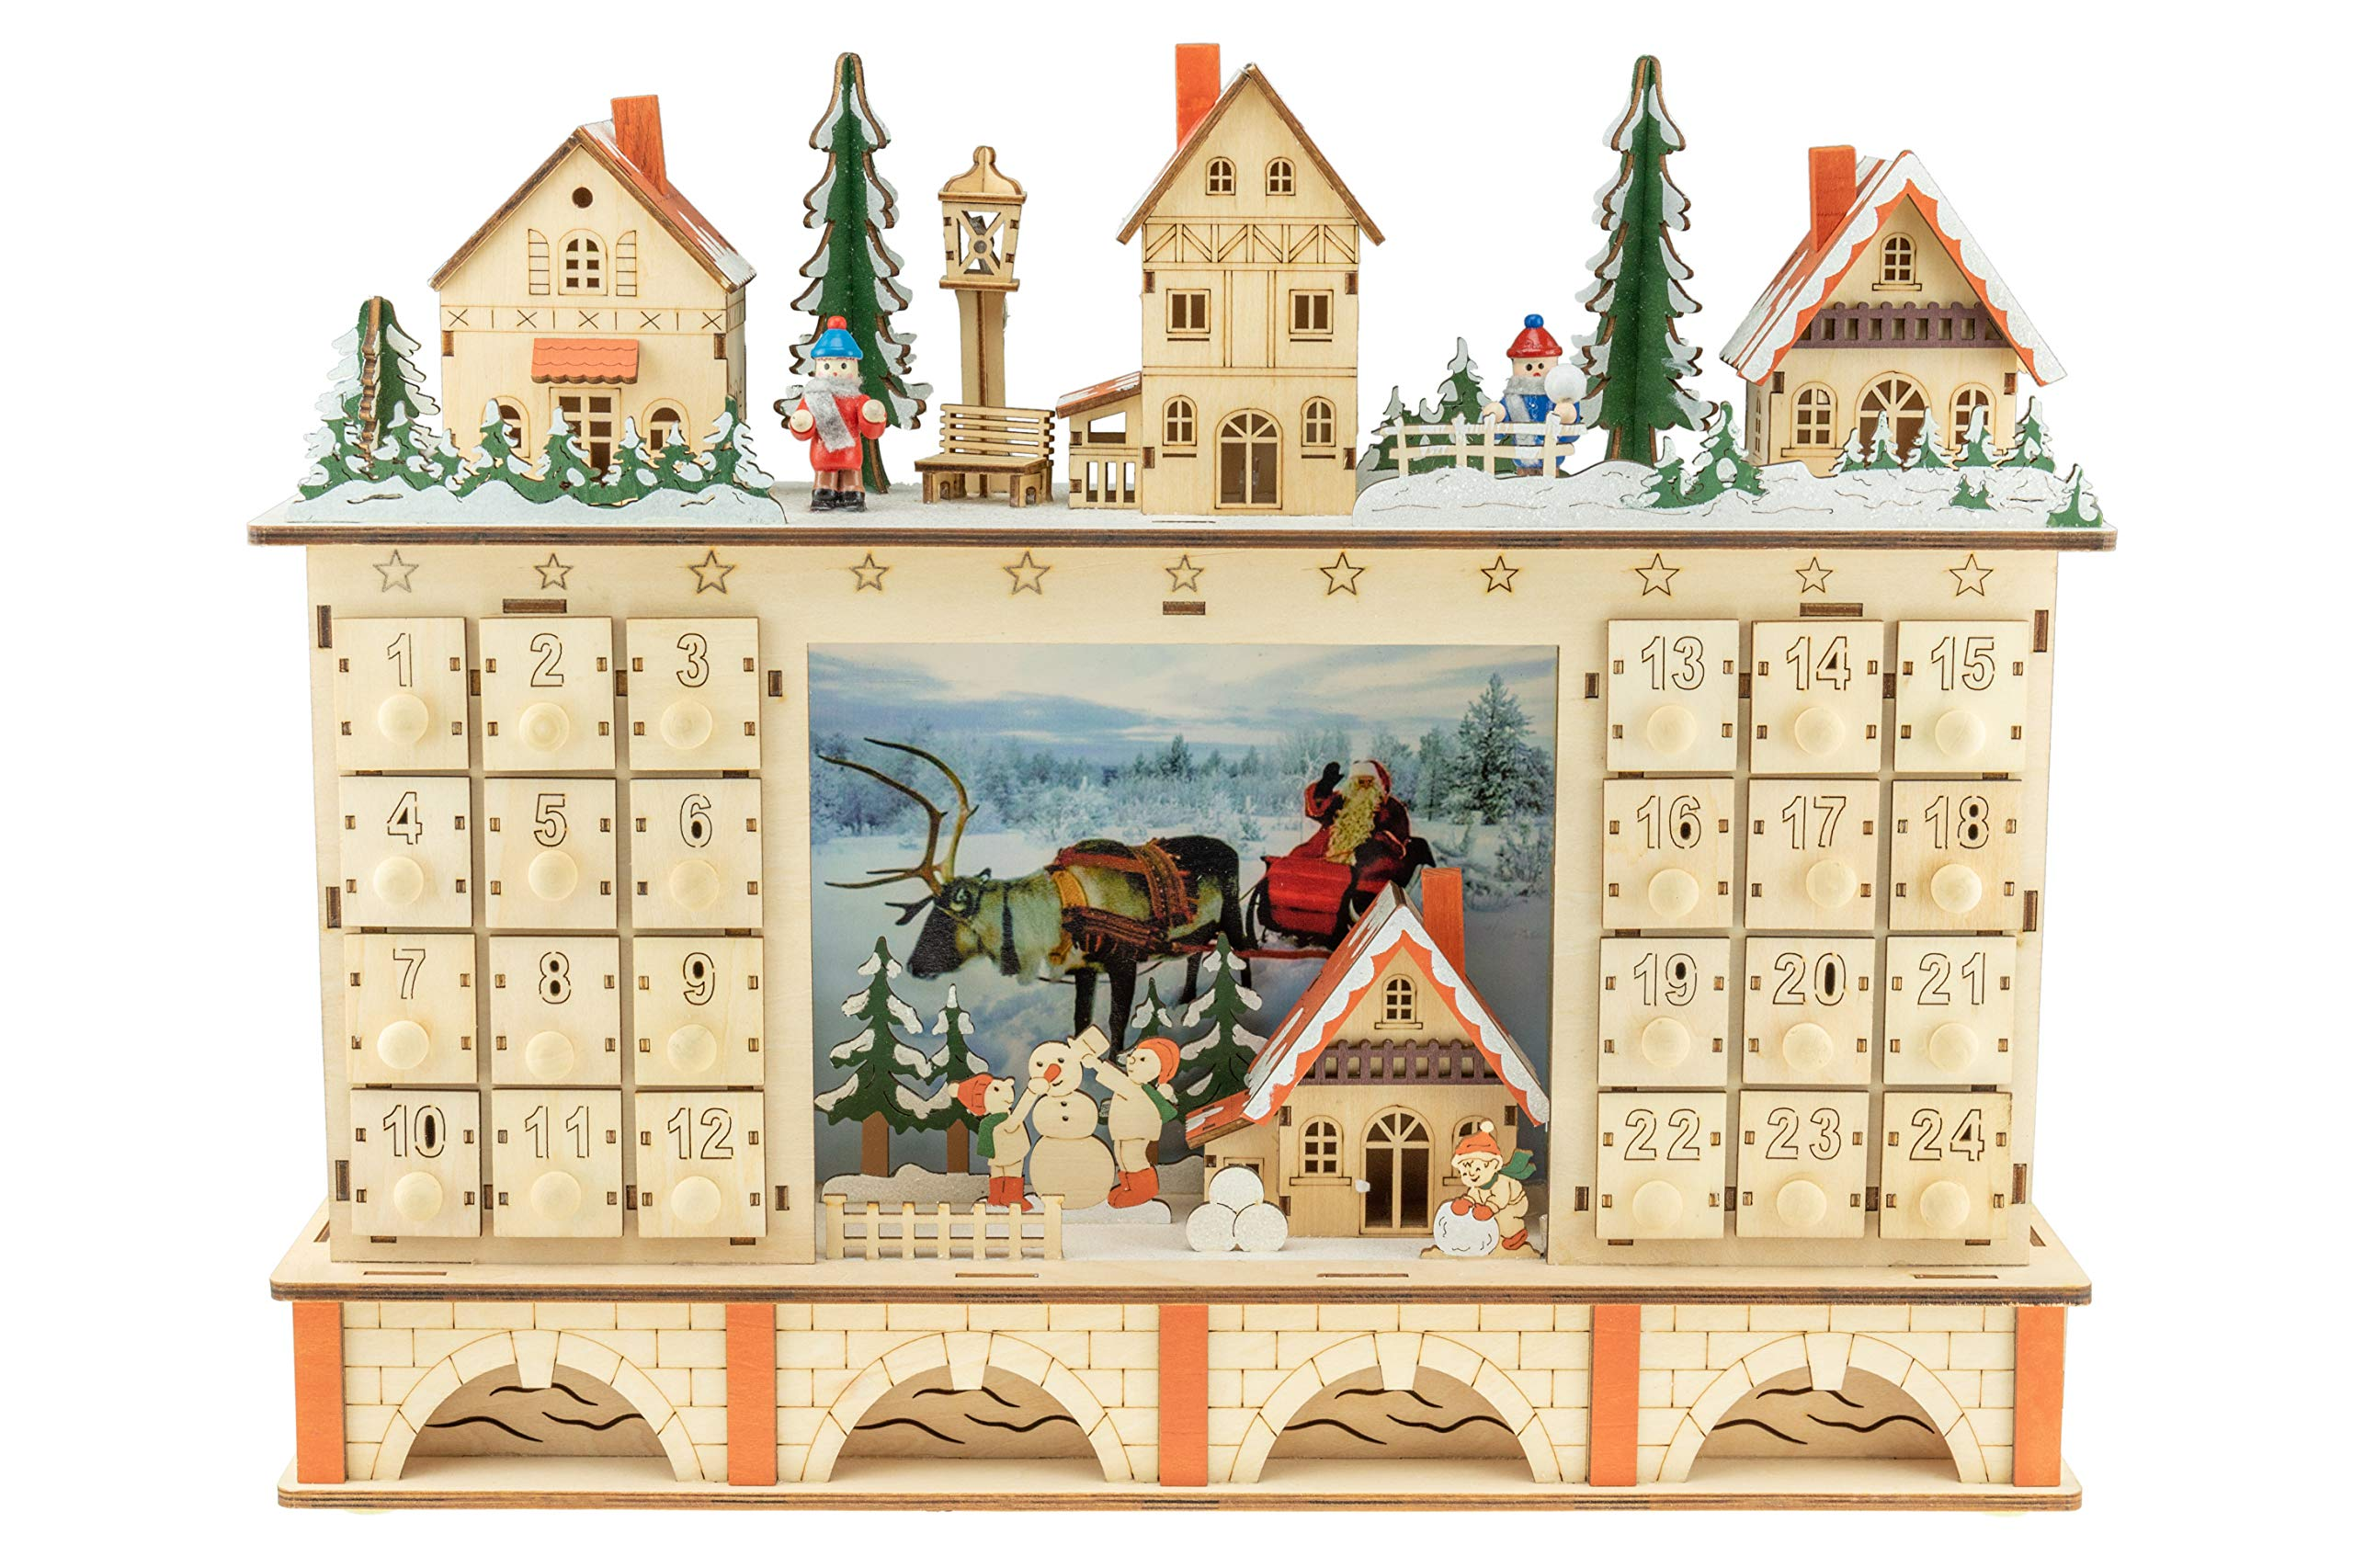 Clever Creations Traditional LED Wooden Advent Calendar Decoration | Festive Christmas Village Design with 24 Drawers | LED Christmas Lights and Santa Photo | Battery Operated